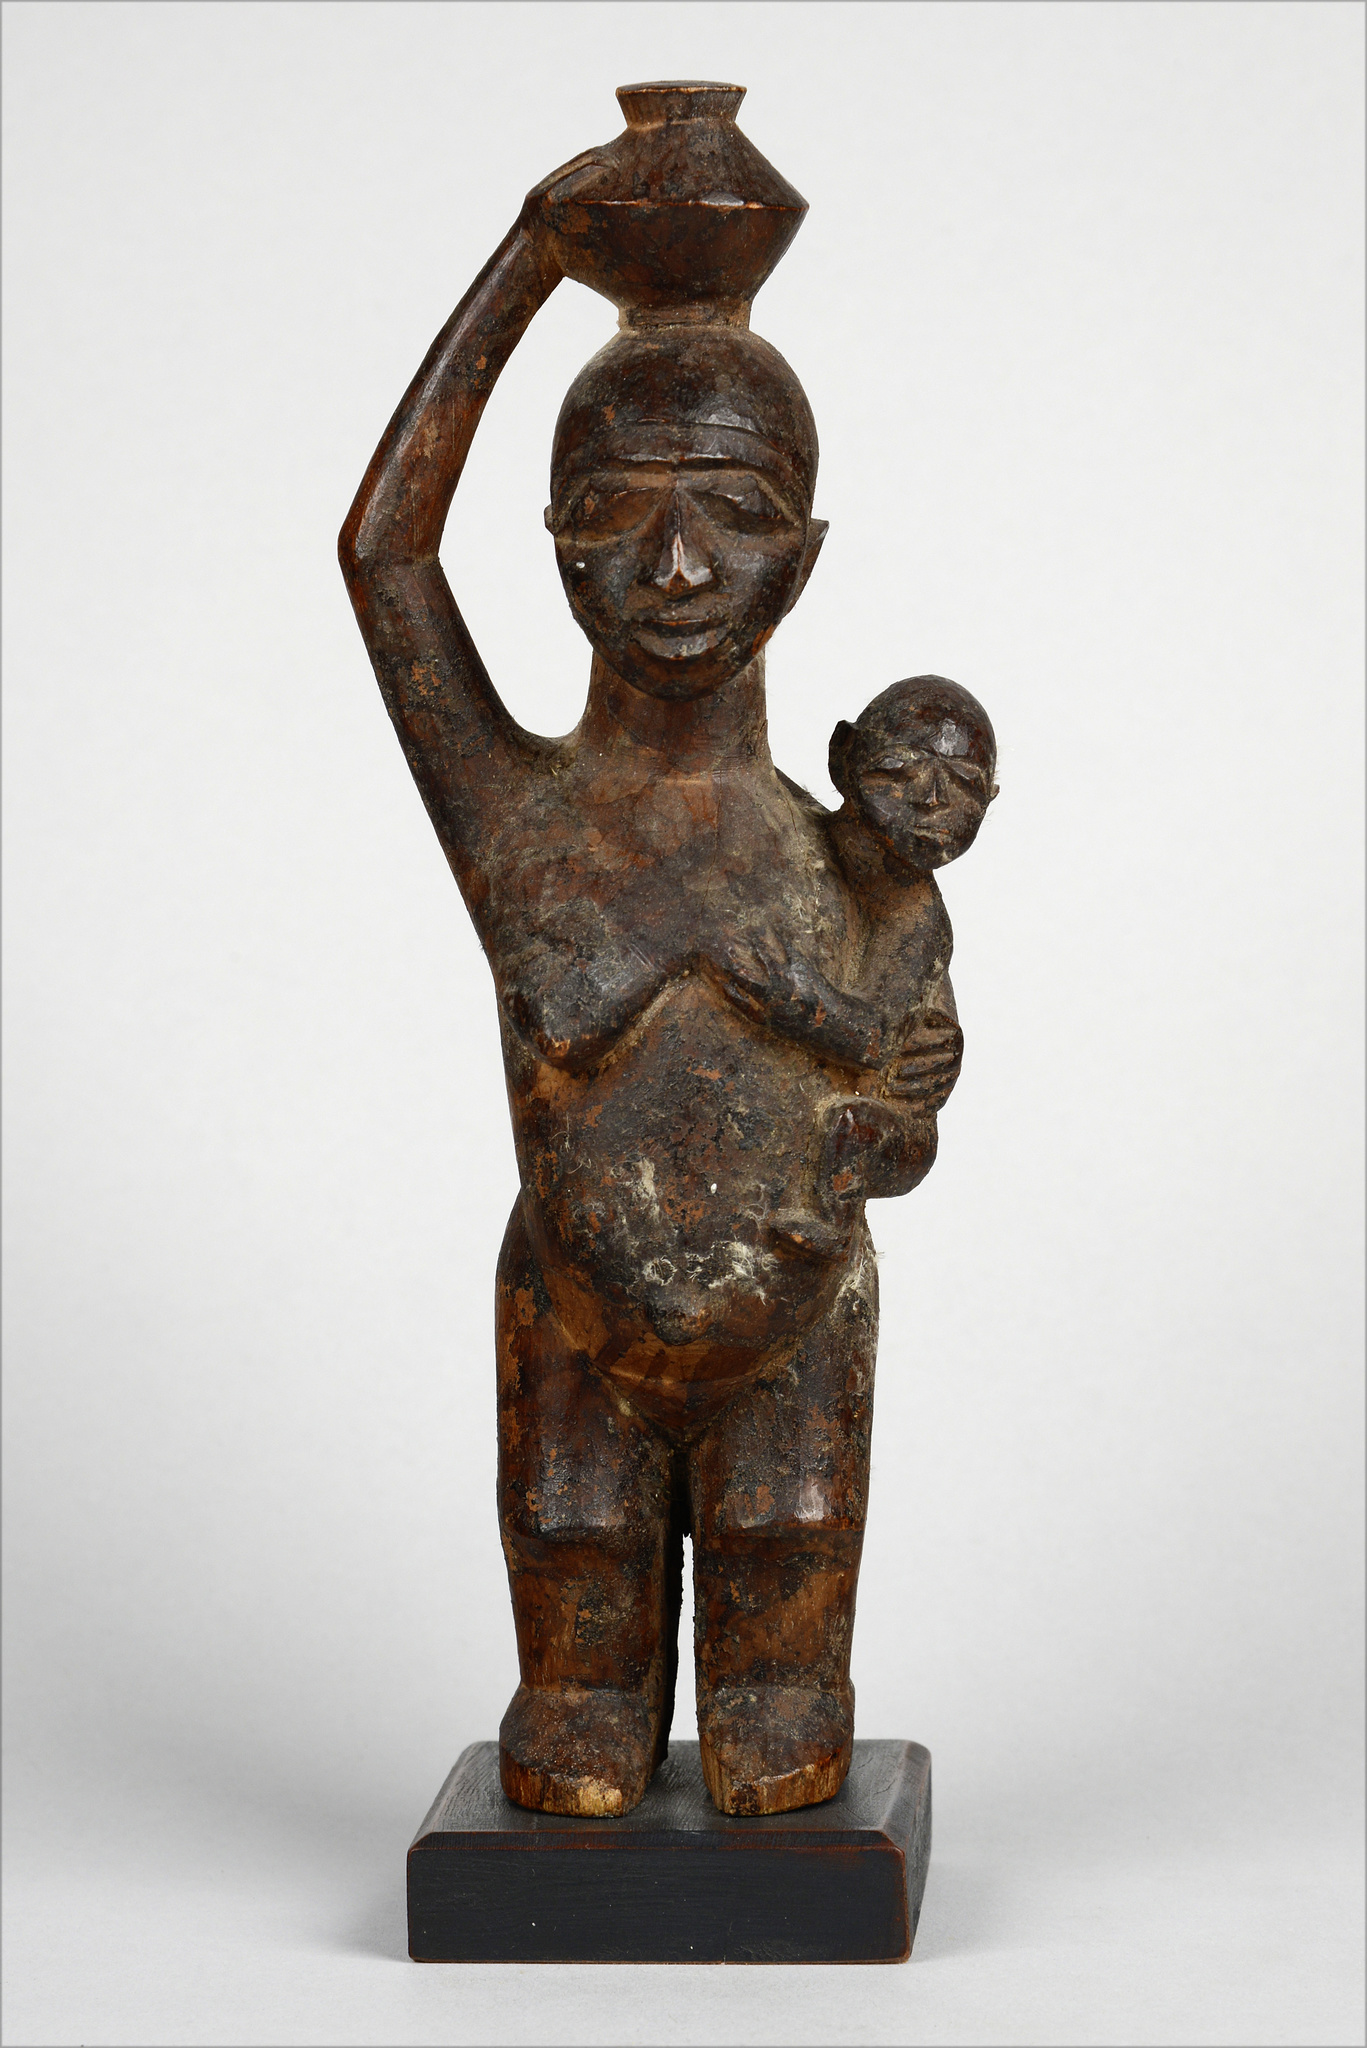 Small female bowl-bearing figure with child